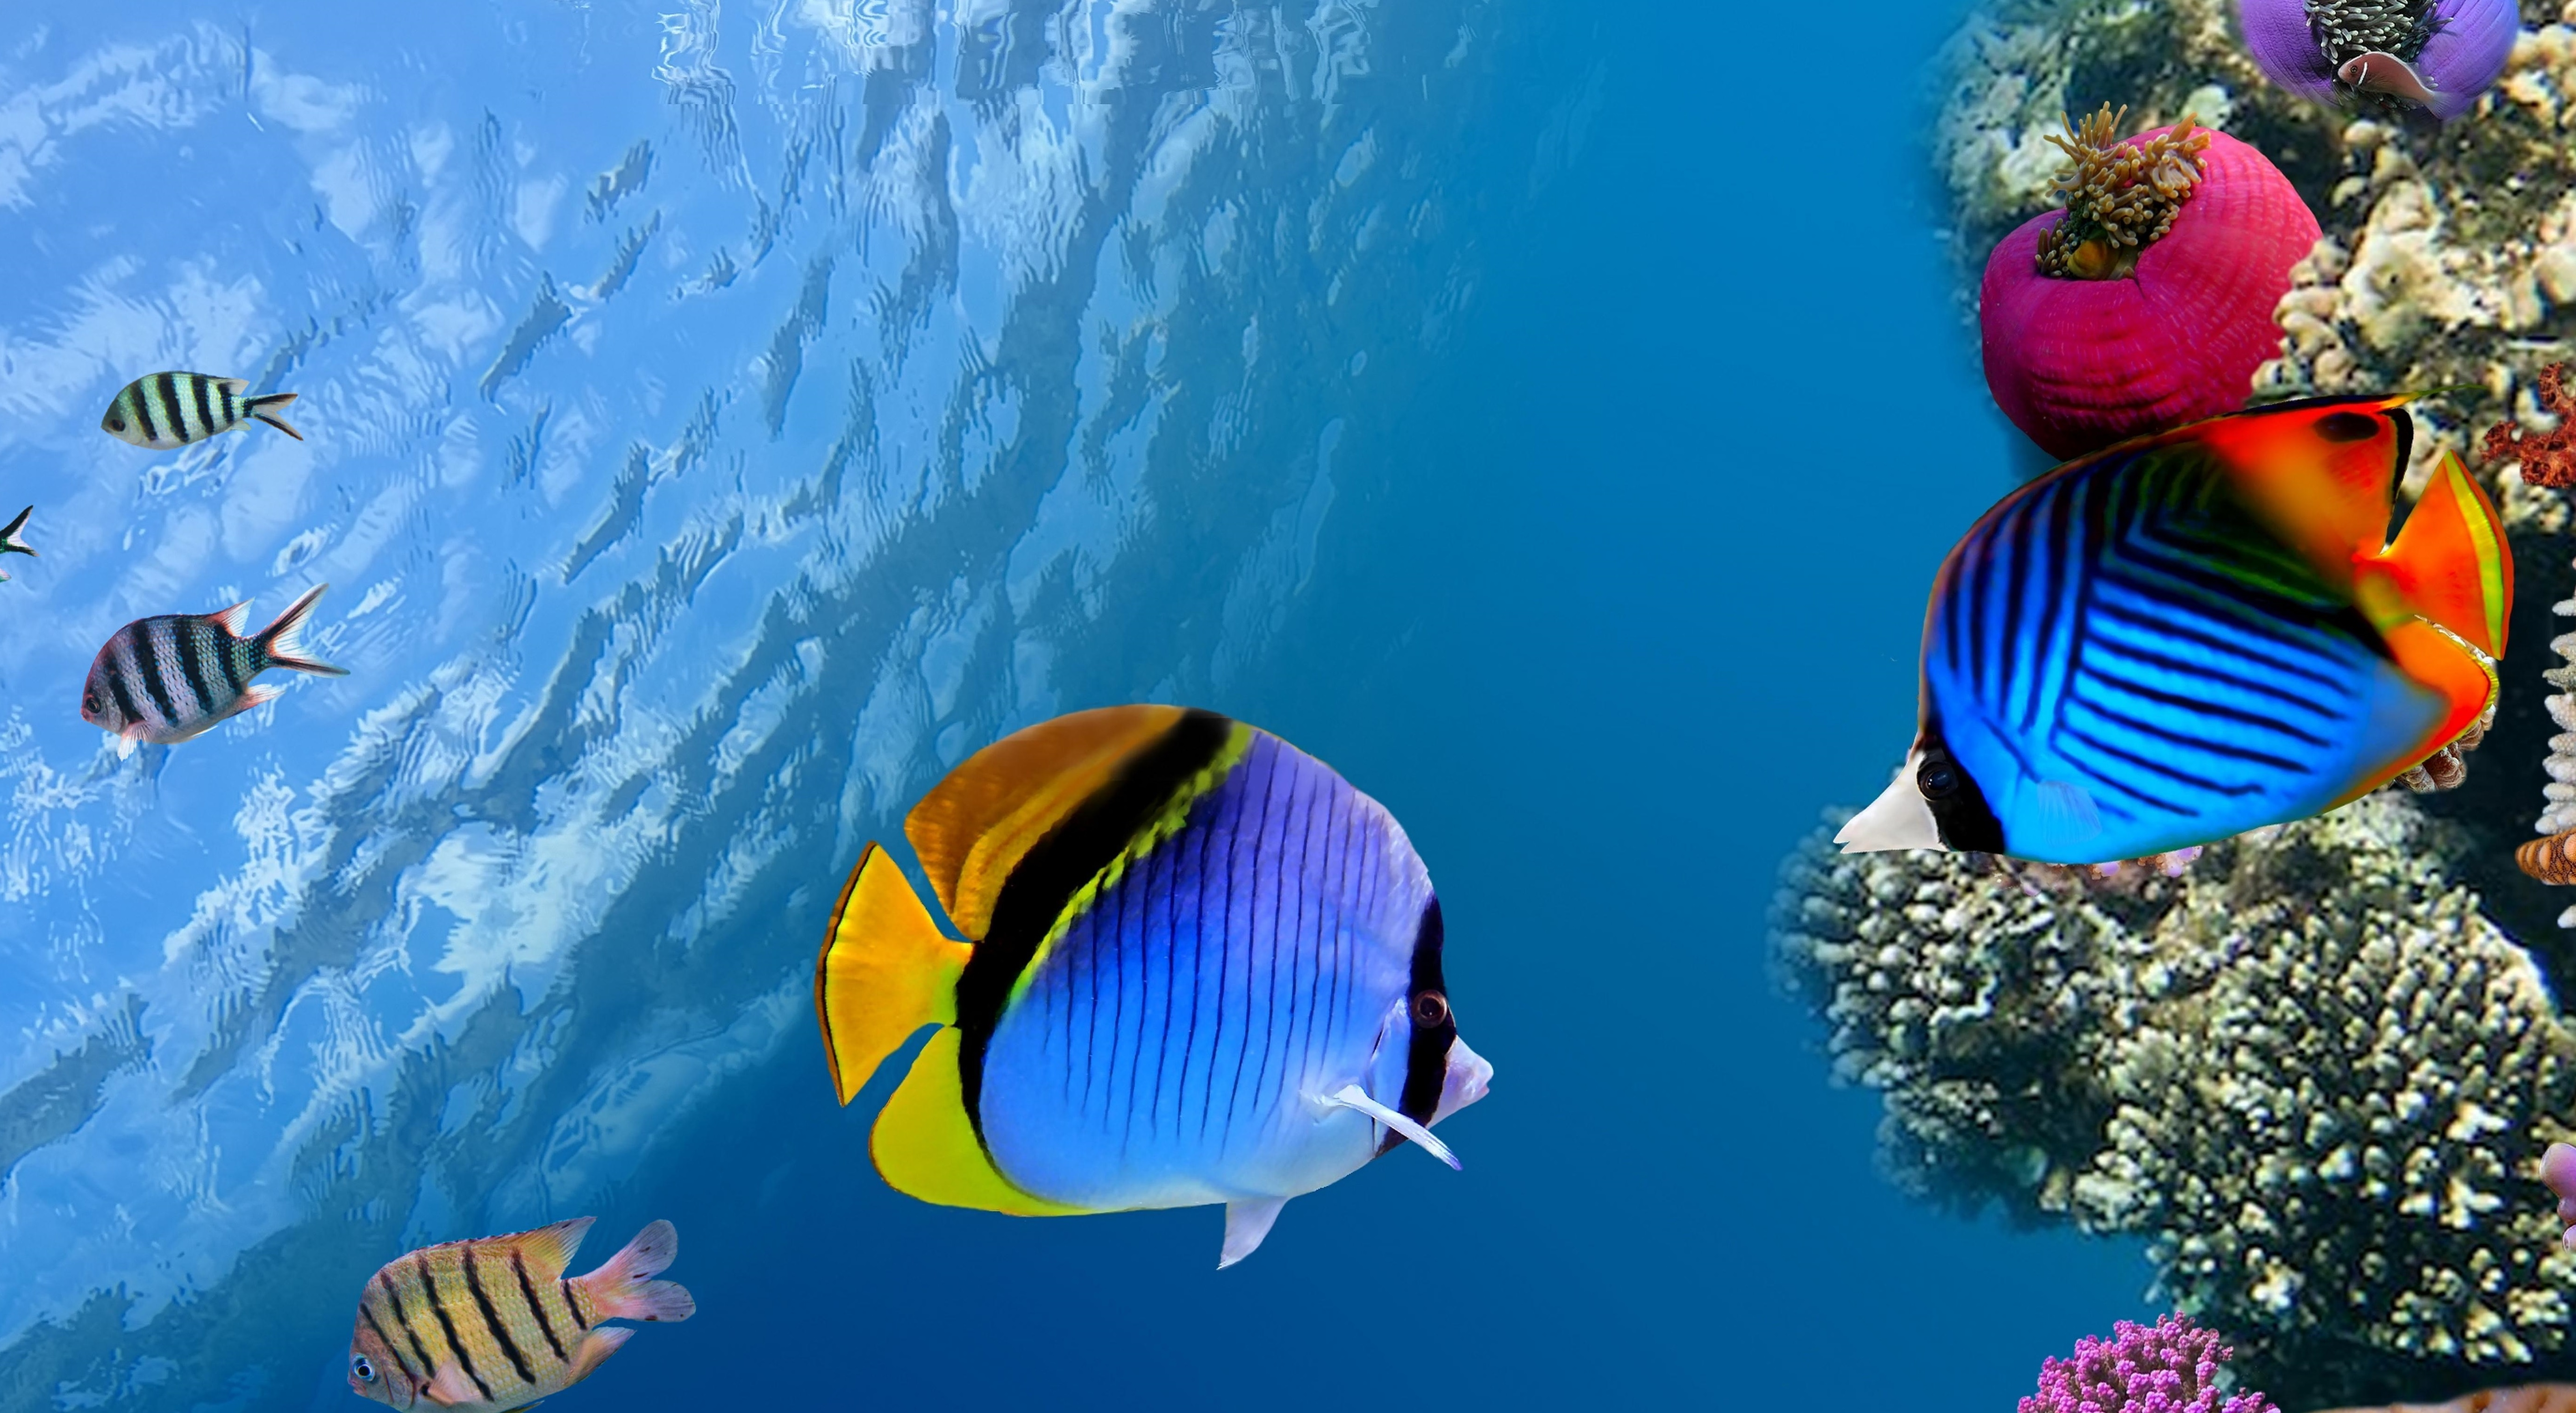 152799 download wallpaper Animals, Under Water, Underwater, Coral, Fish, Sea, Ocean screensavers and pictures for free